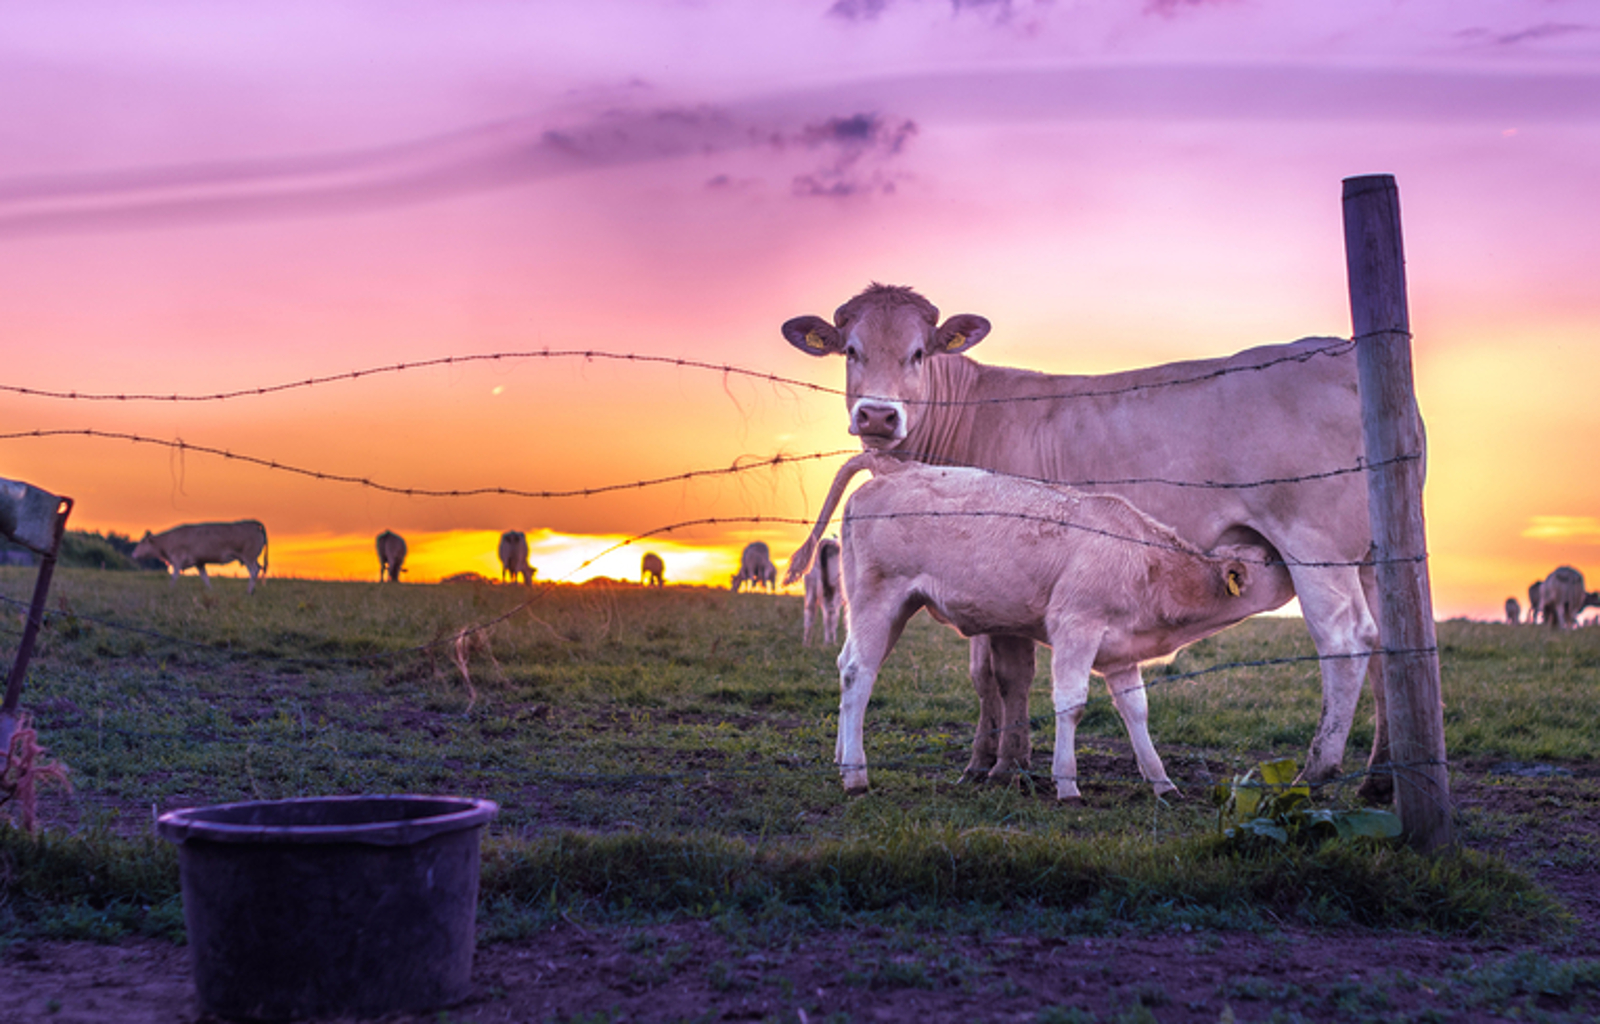 When Will Animal Farming End? This Researcher Has a Prediction